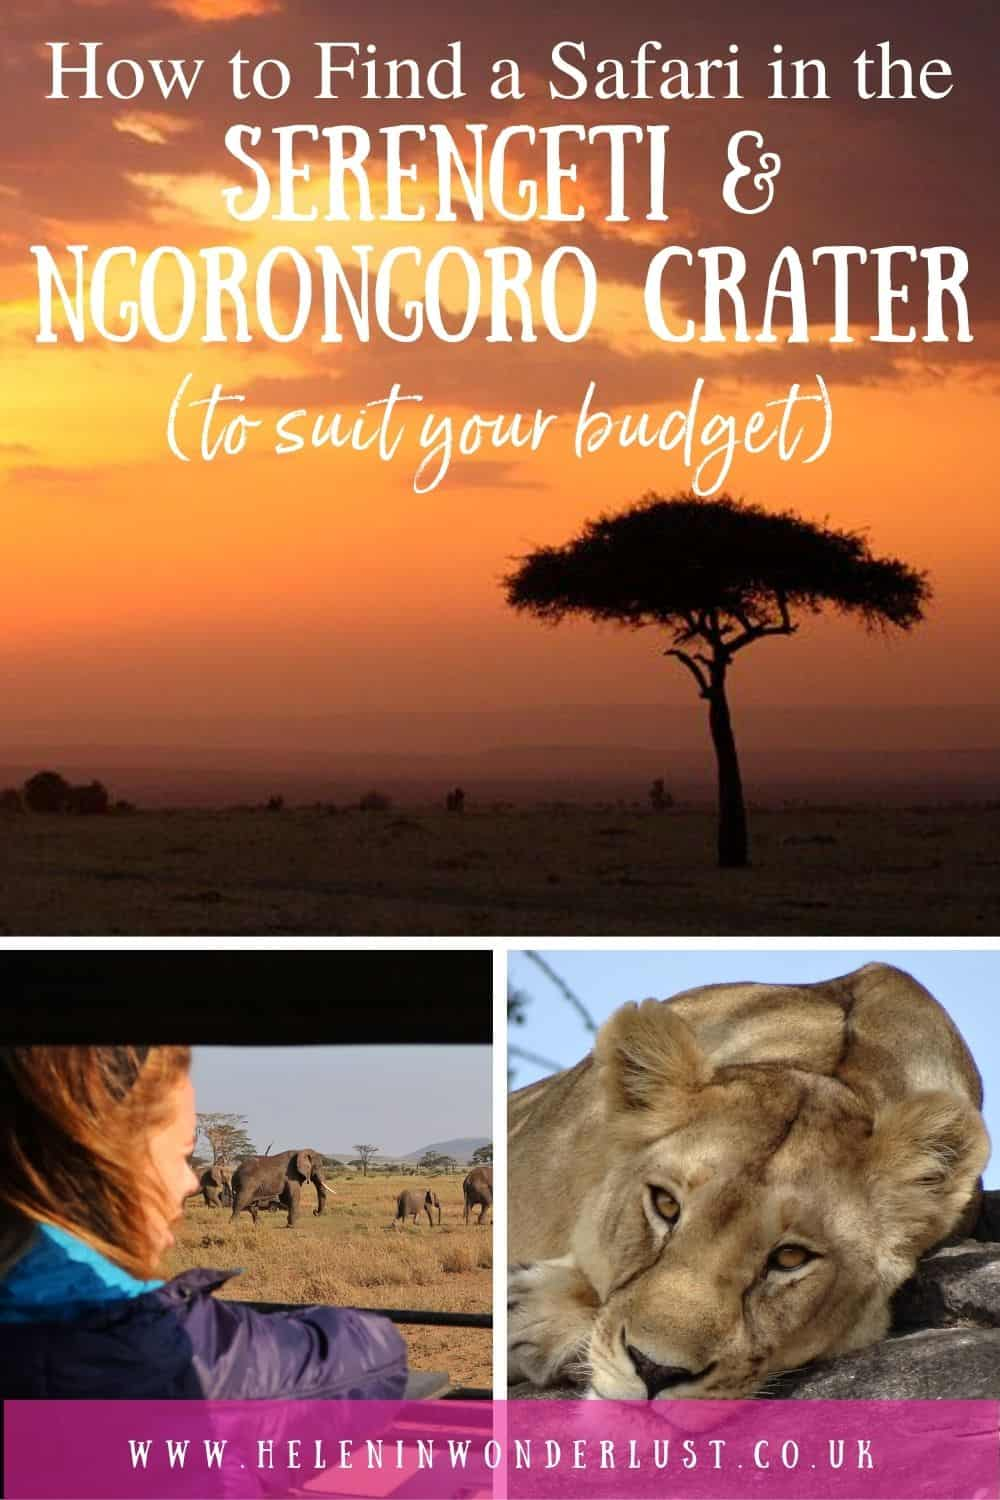 How to find, plan and book the Serengeti & Ngorongoro Crater safari that's right for you, including when to go, where to stay, duration & who to go with!